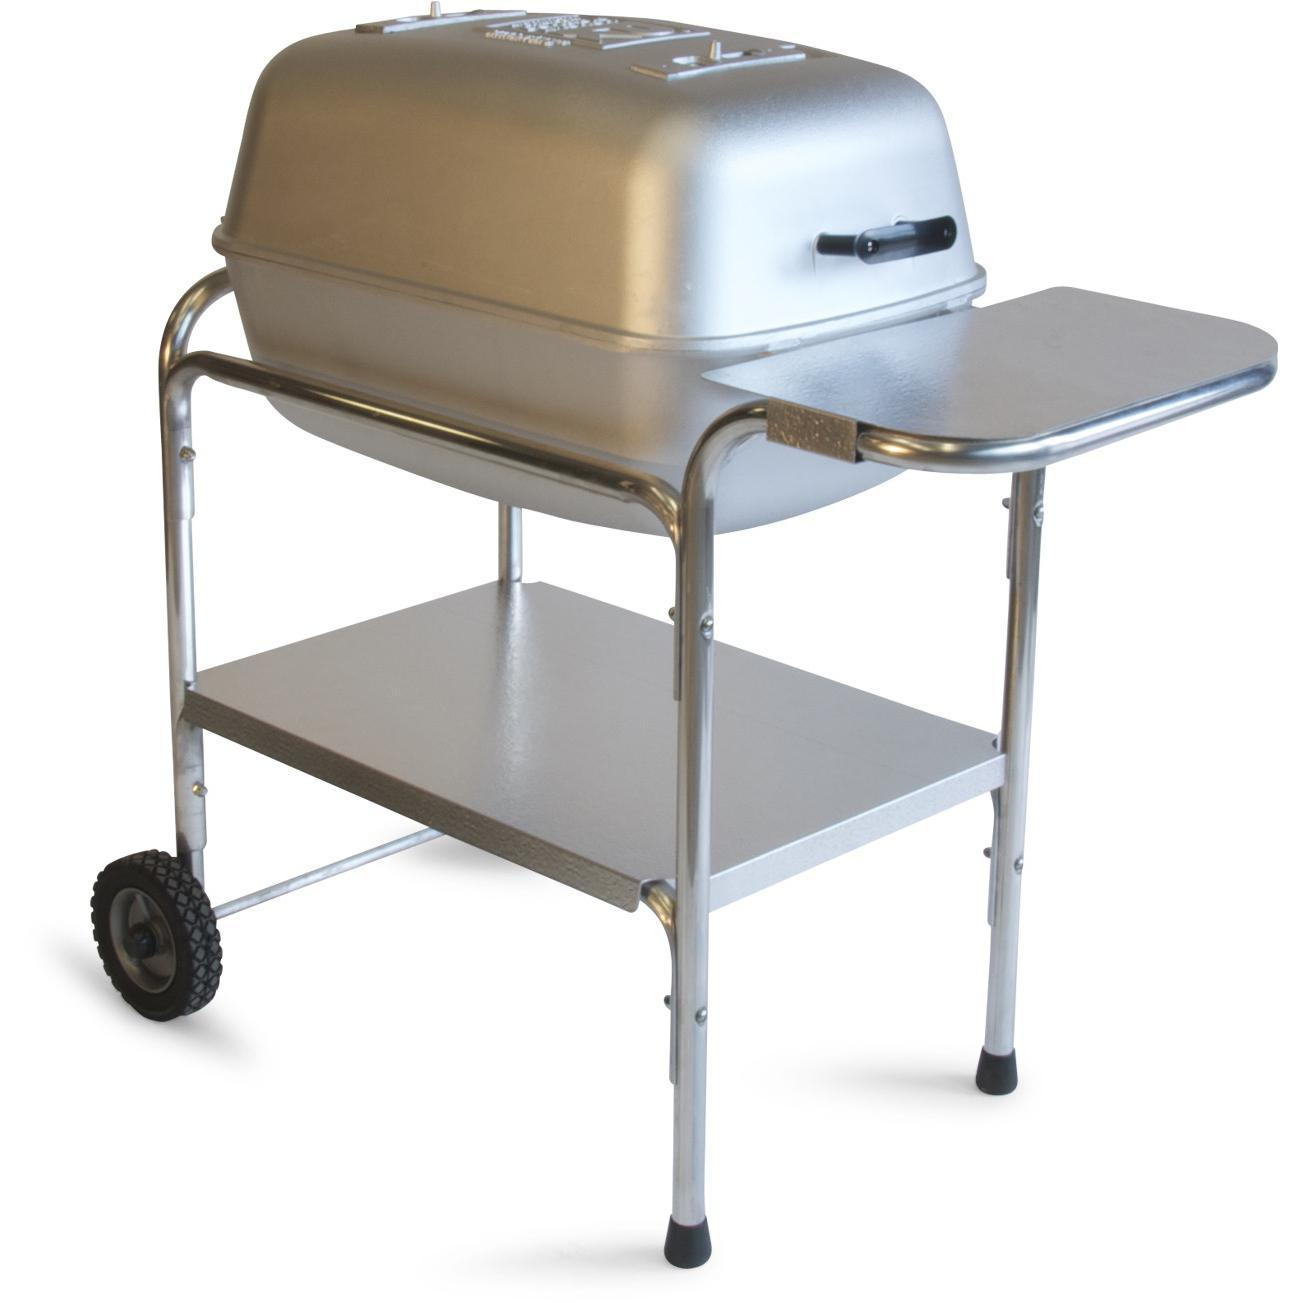 Charcoal: PK 99740 Cast Aluminum Charcoal Grill & Smoker